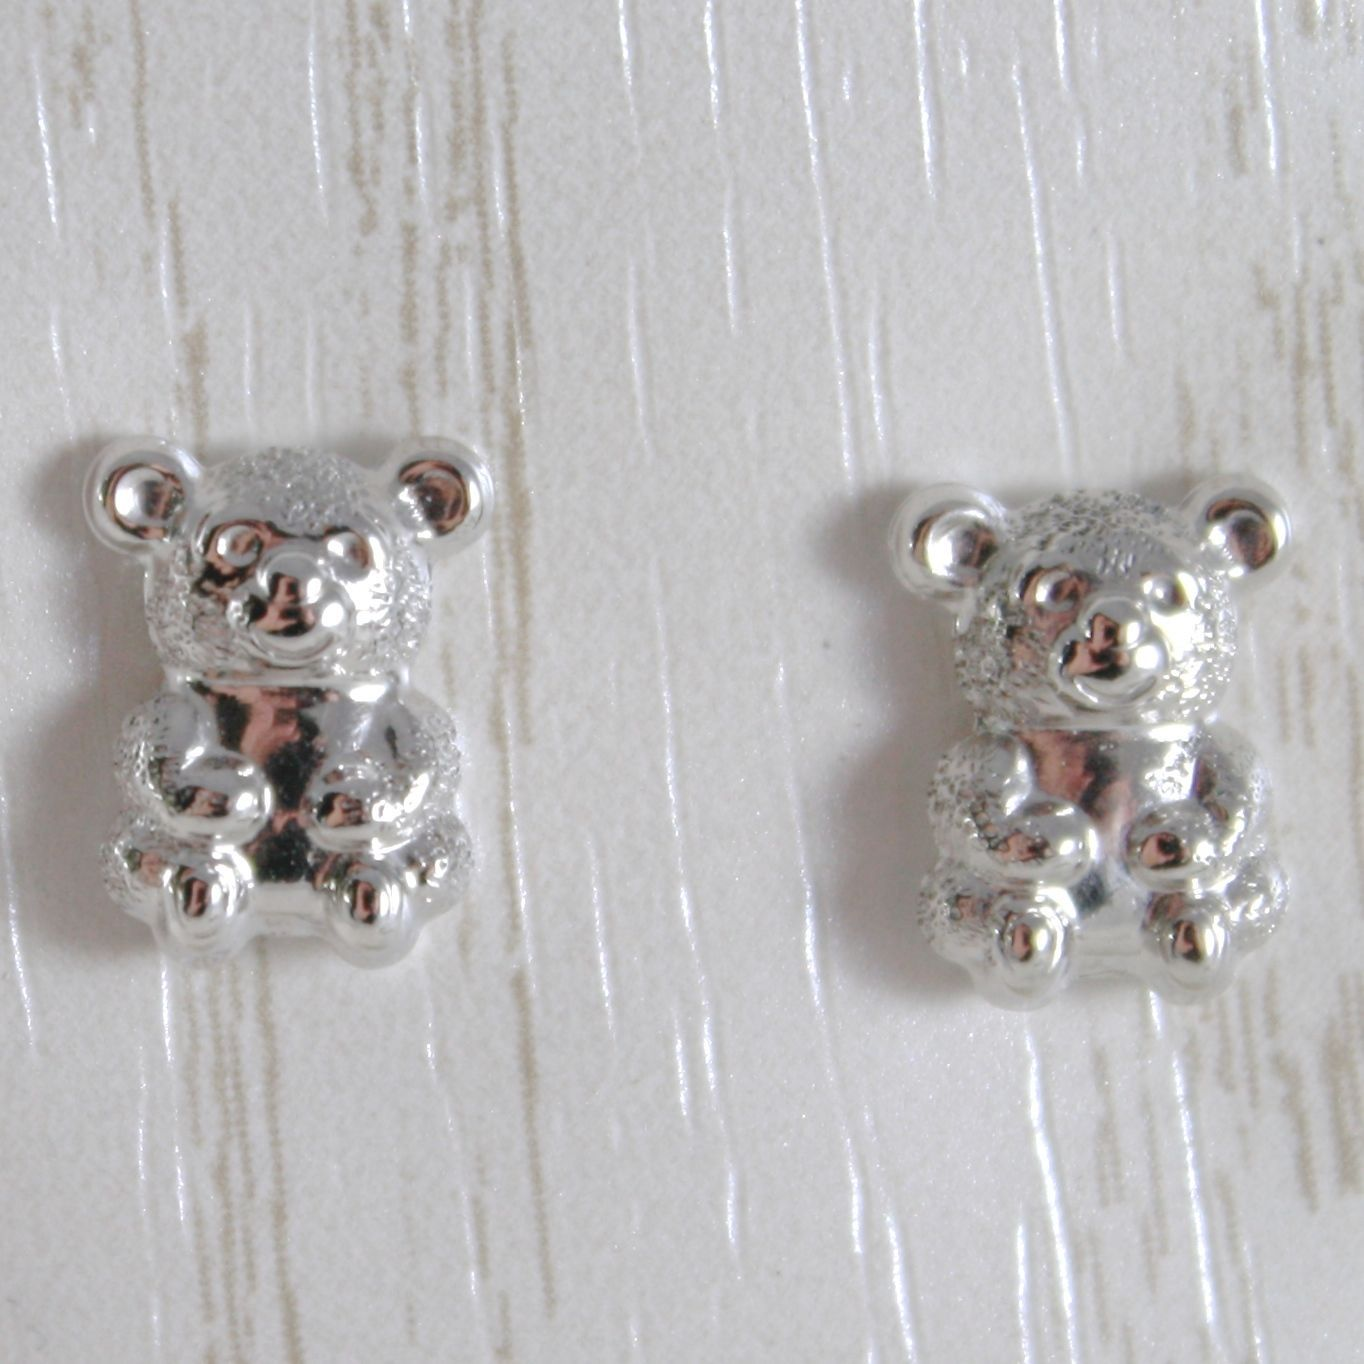 750 White Gold Earrings 18k by Baby, Bears Patinated, Length 1.0 cm